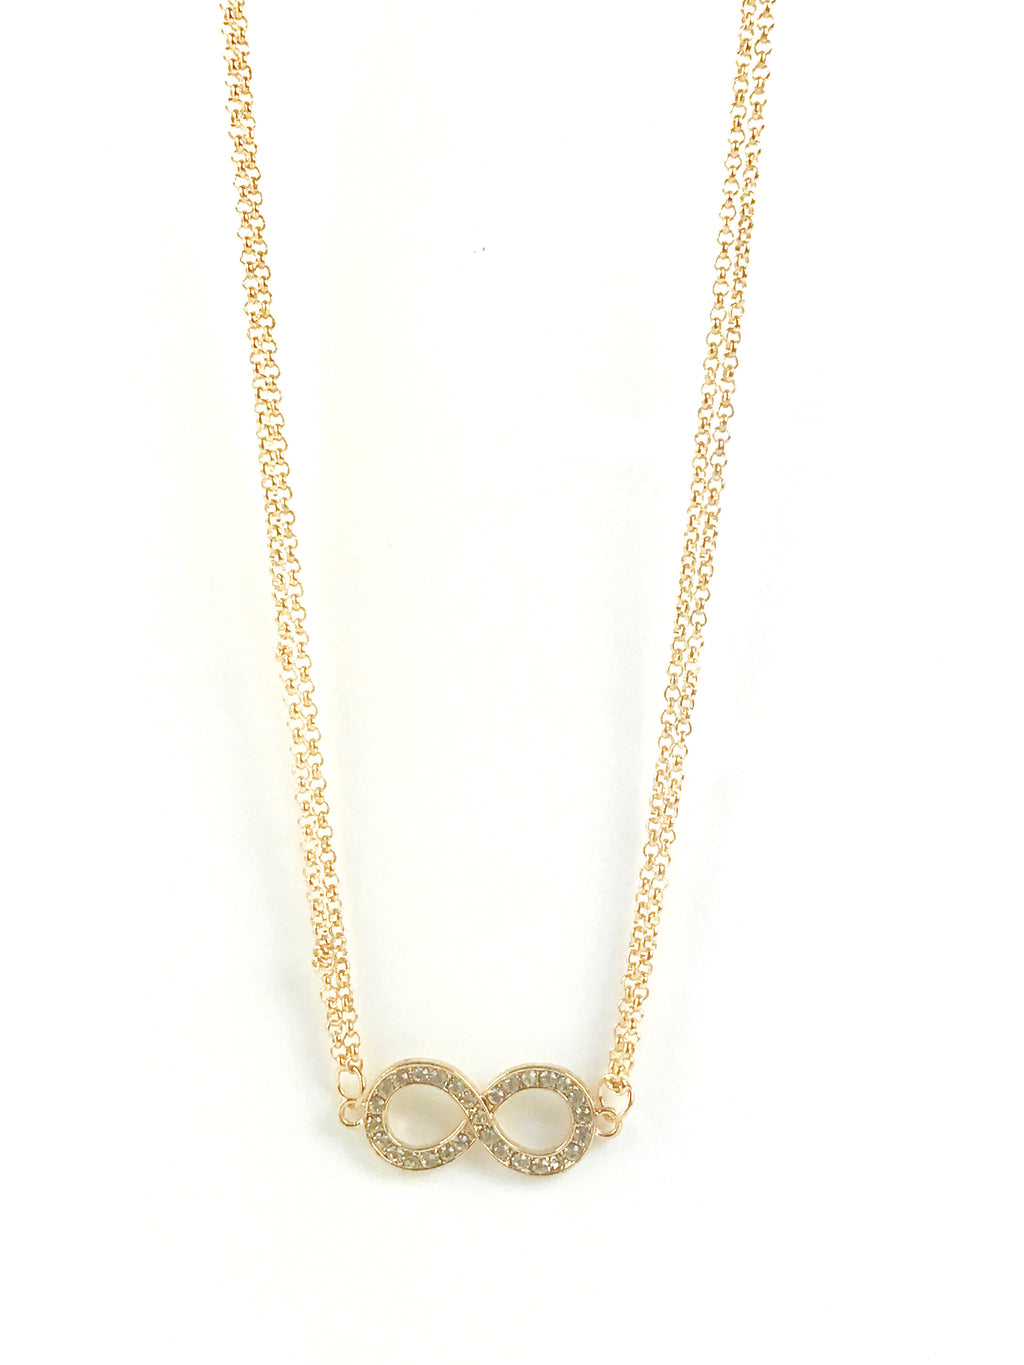 Body Chain Gold Infinity